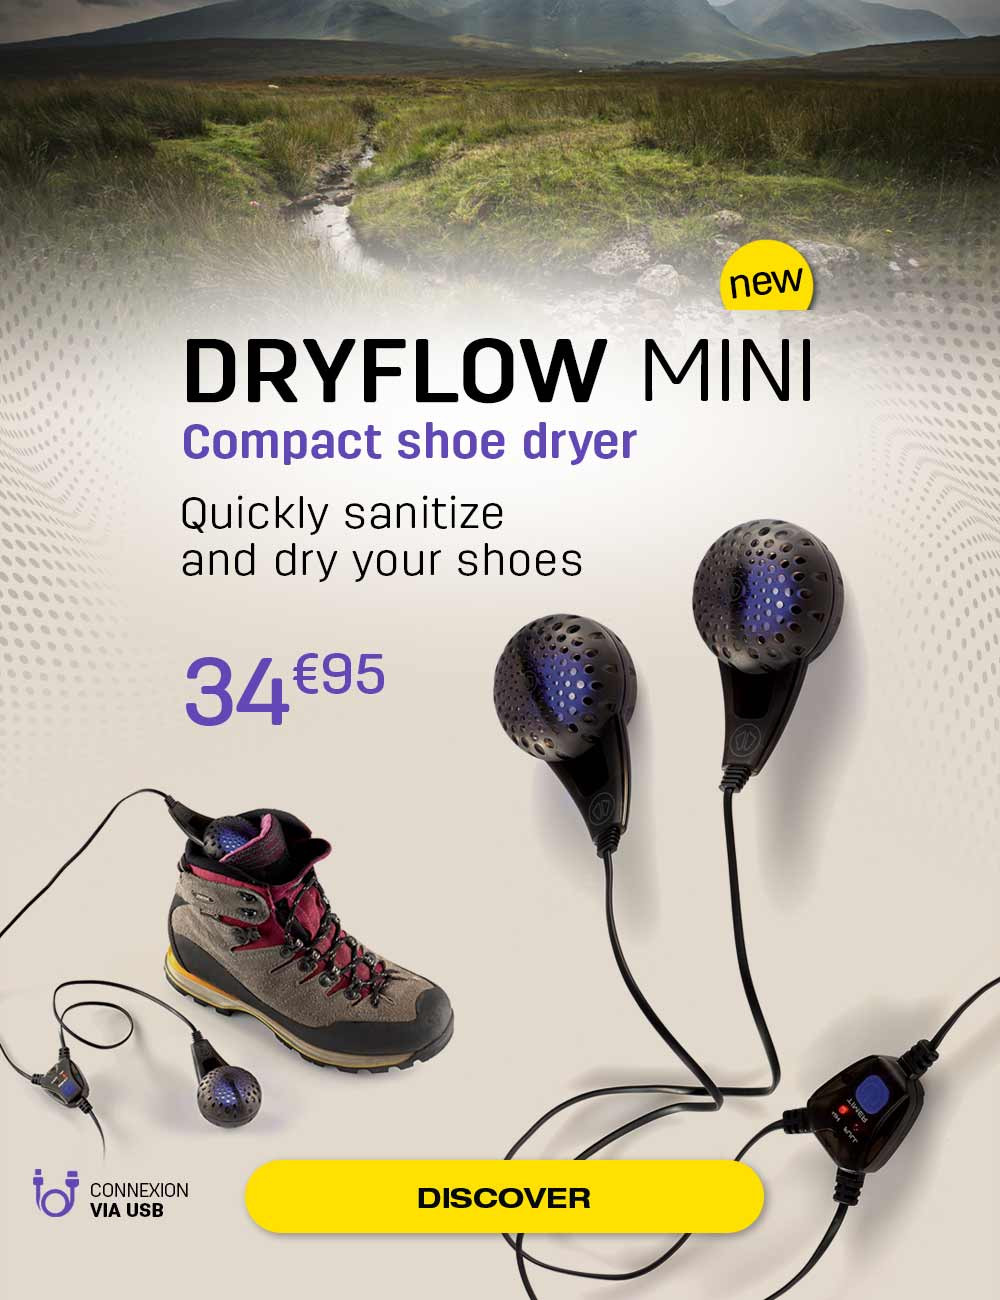 Quickly sanitize and dry your shoes!